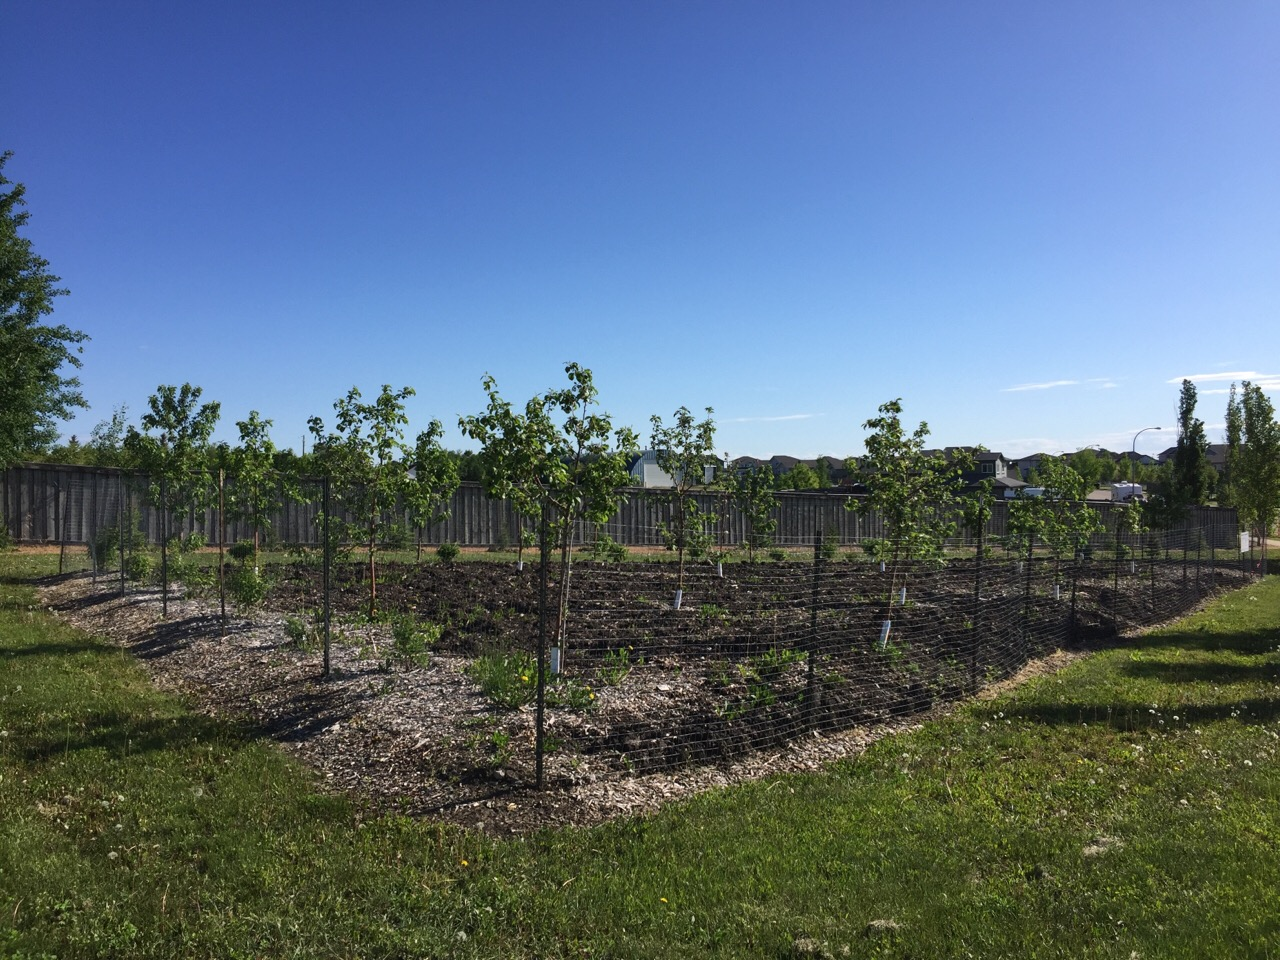 Copperwood Orchard